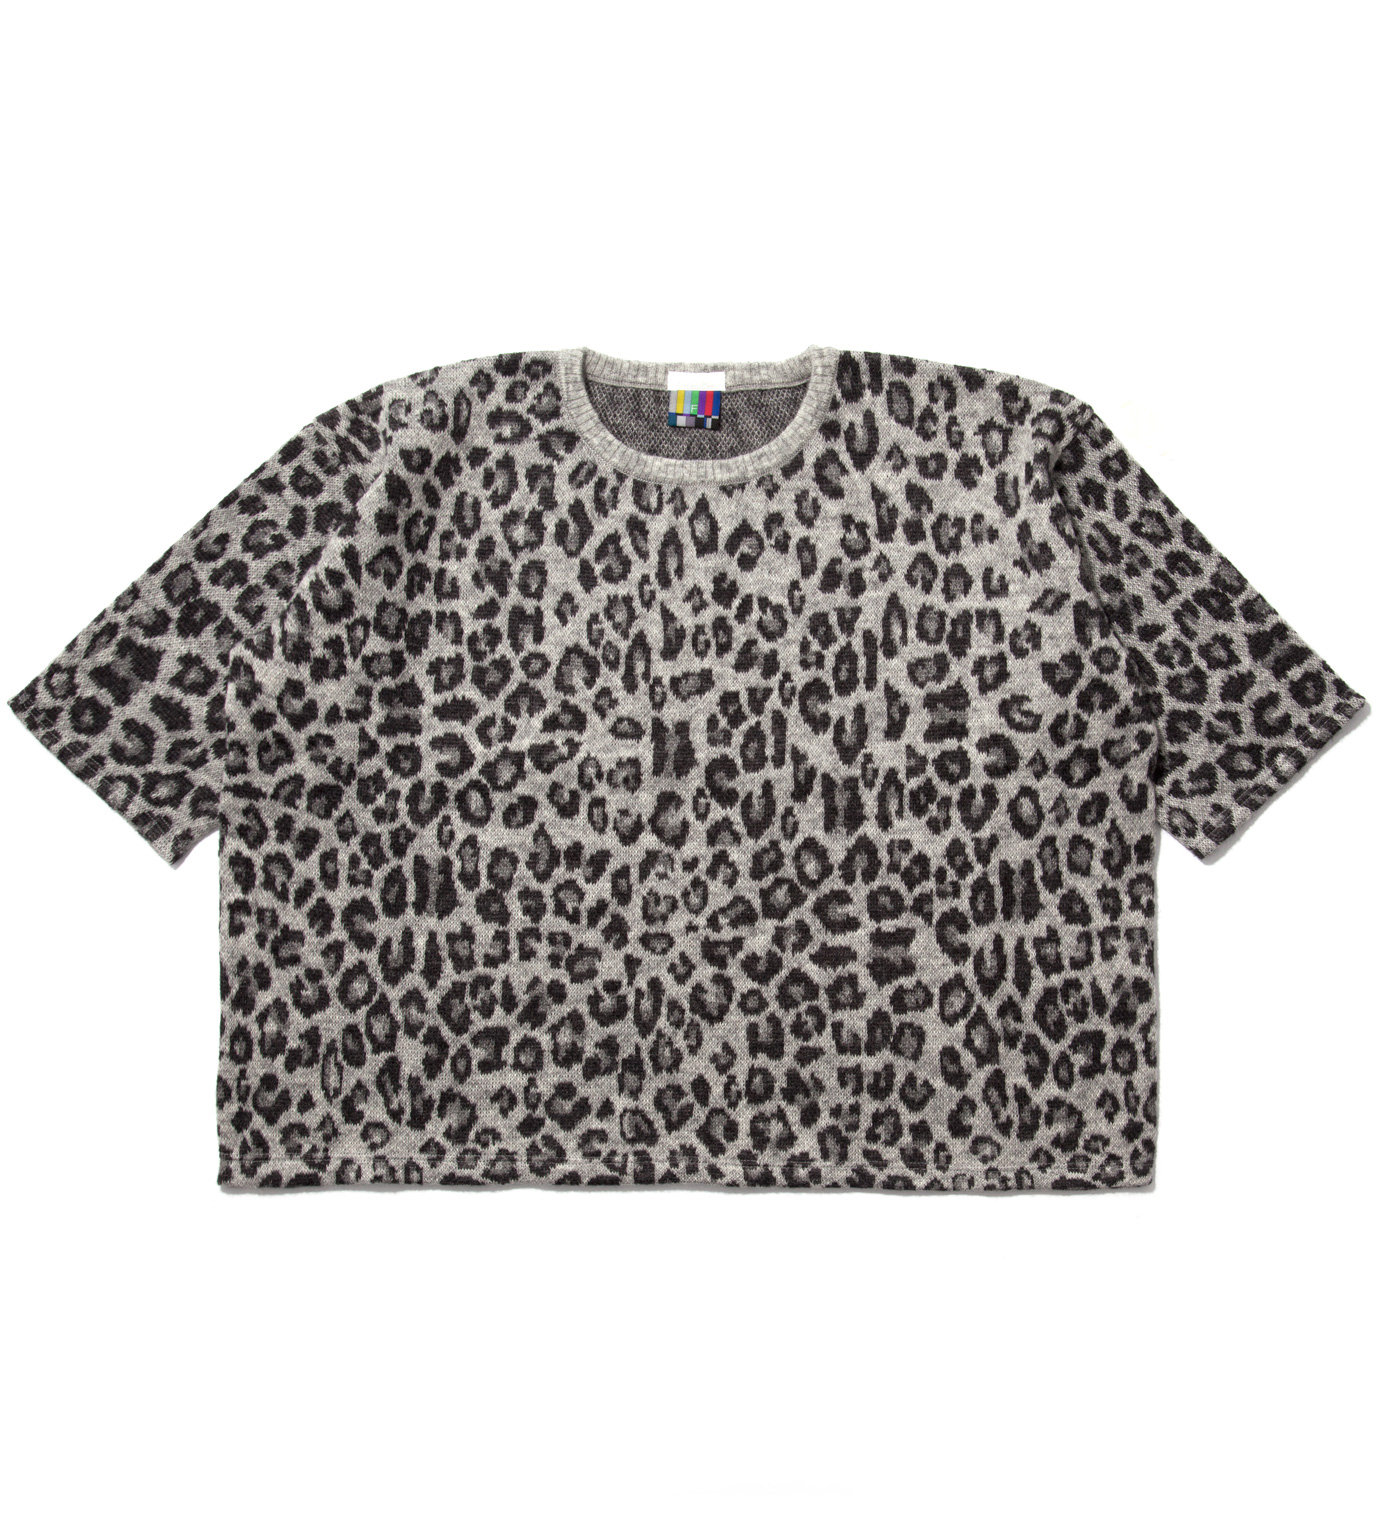 FACETASM Grey Leopard Big Knit T-Shirt